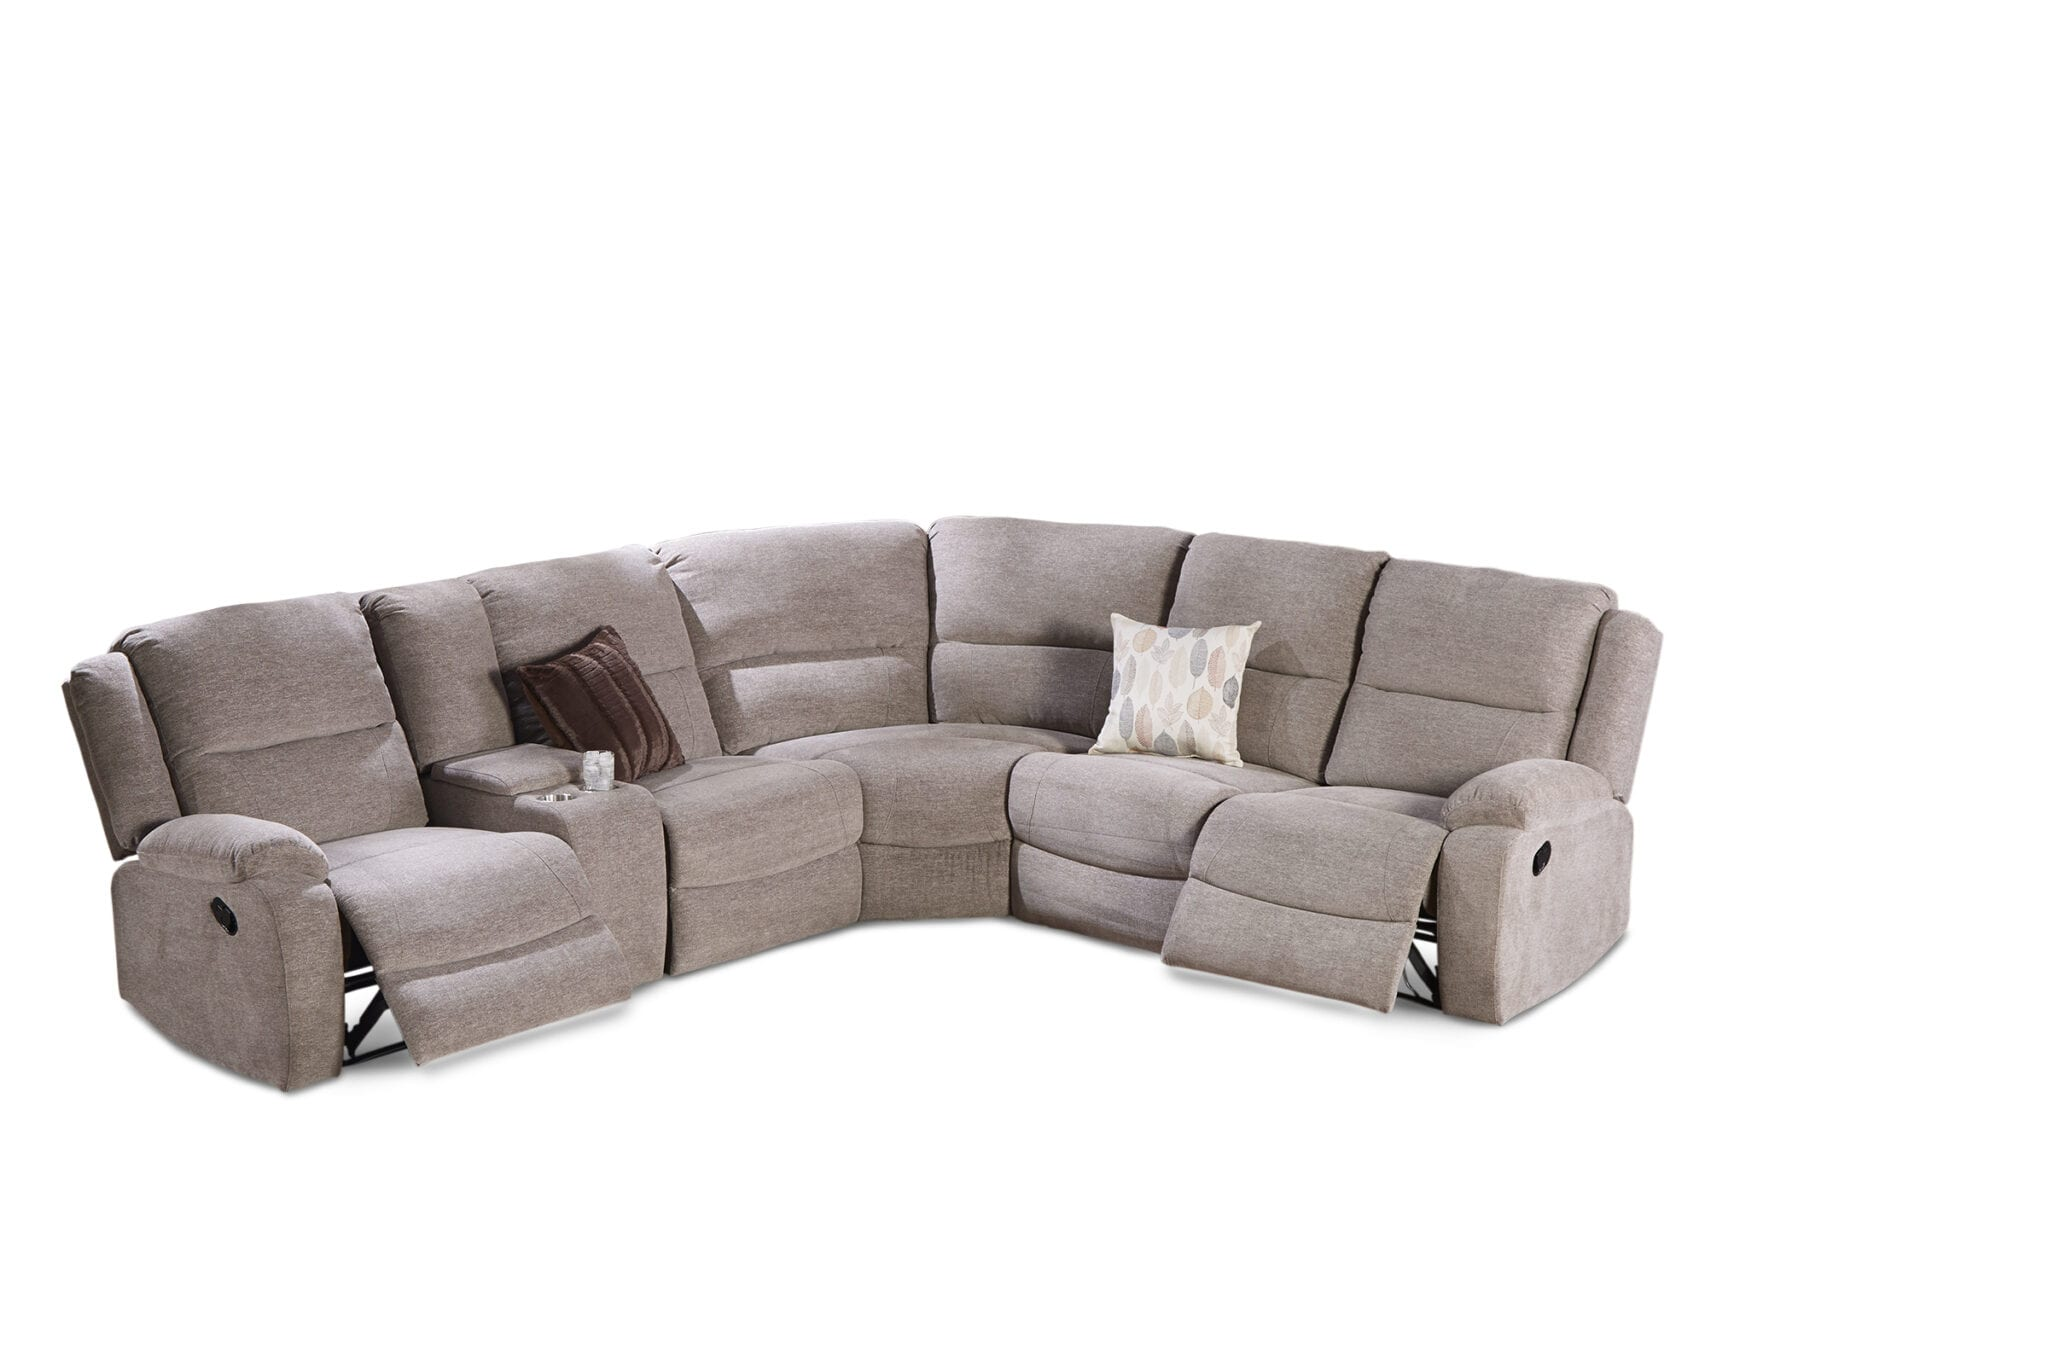 Fred meyer sofa sets refil sofa for Ashley lucia sofa chaise